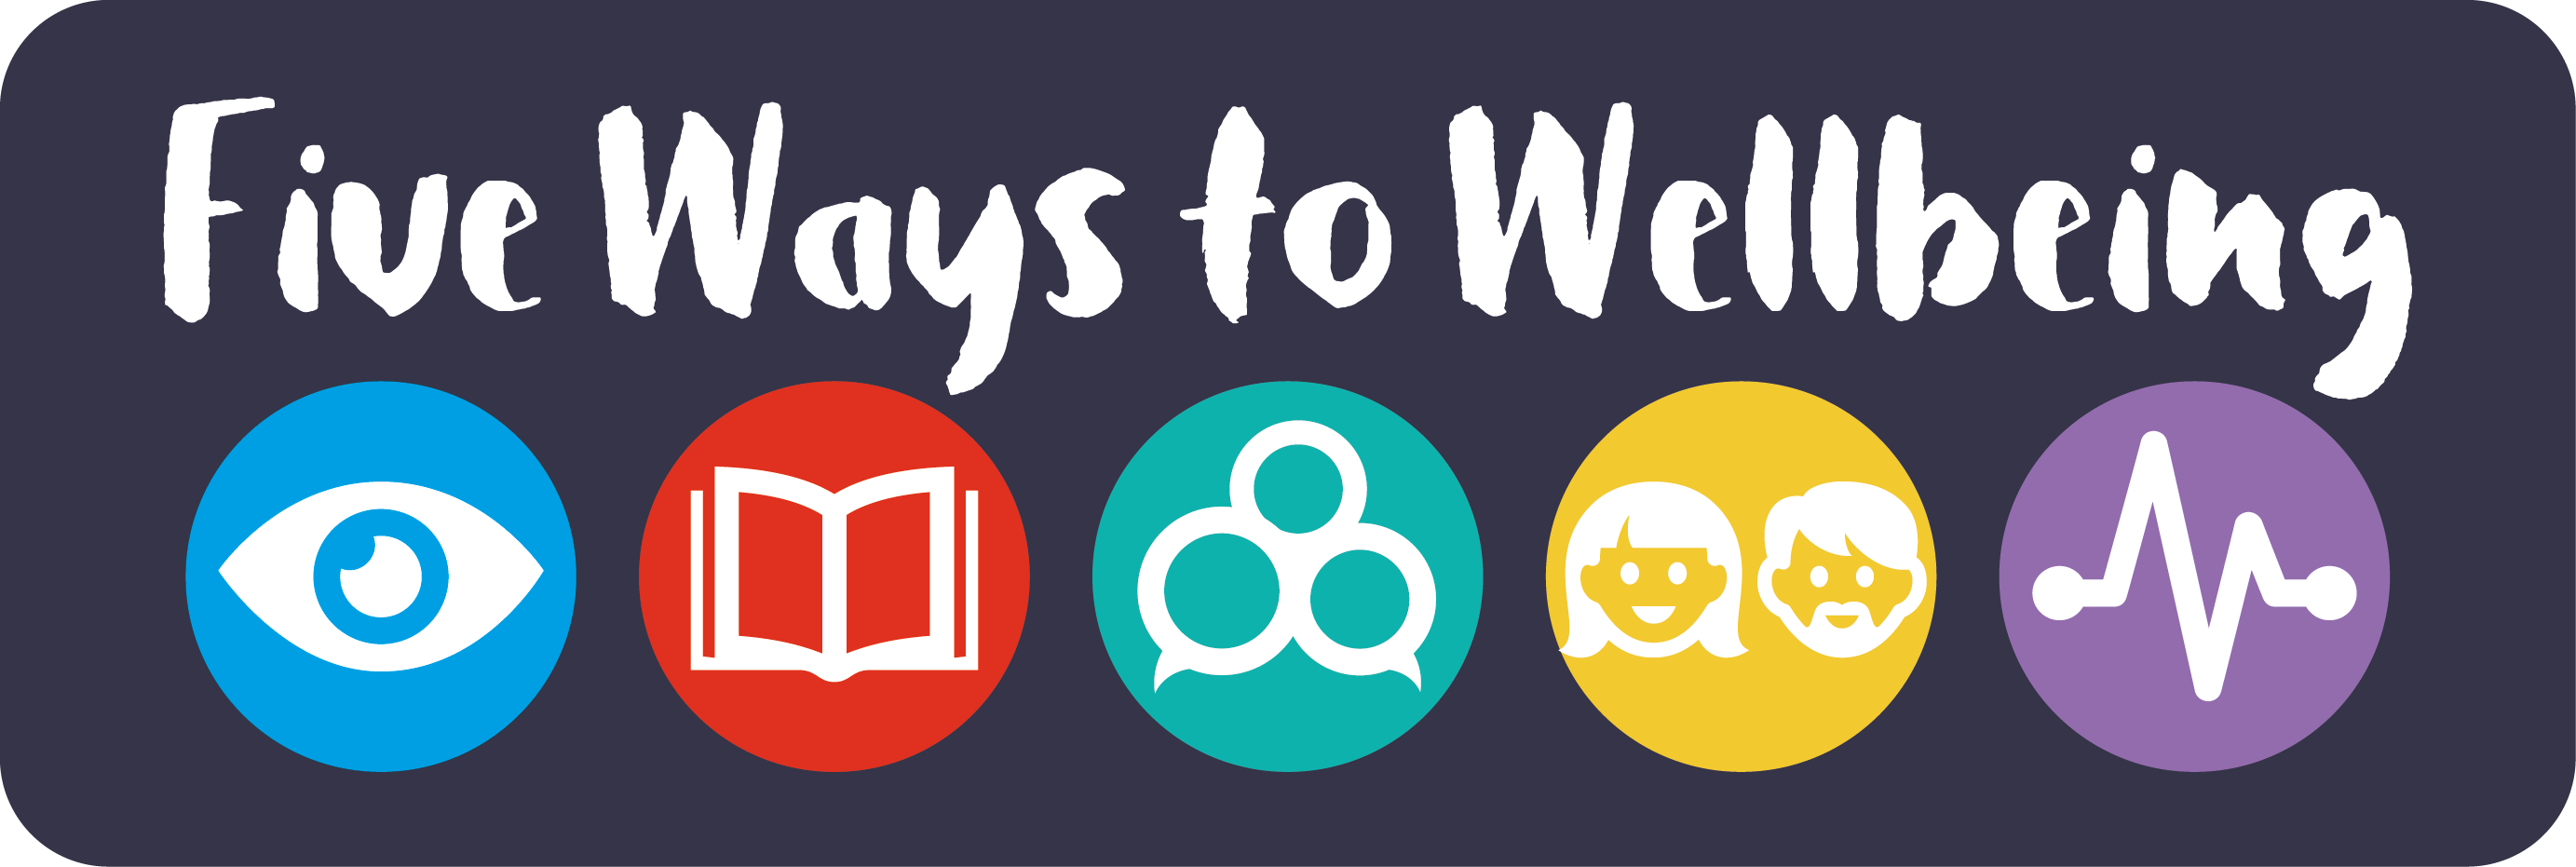 Five Ways to Wellbeing logo and link to webpage